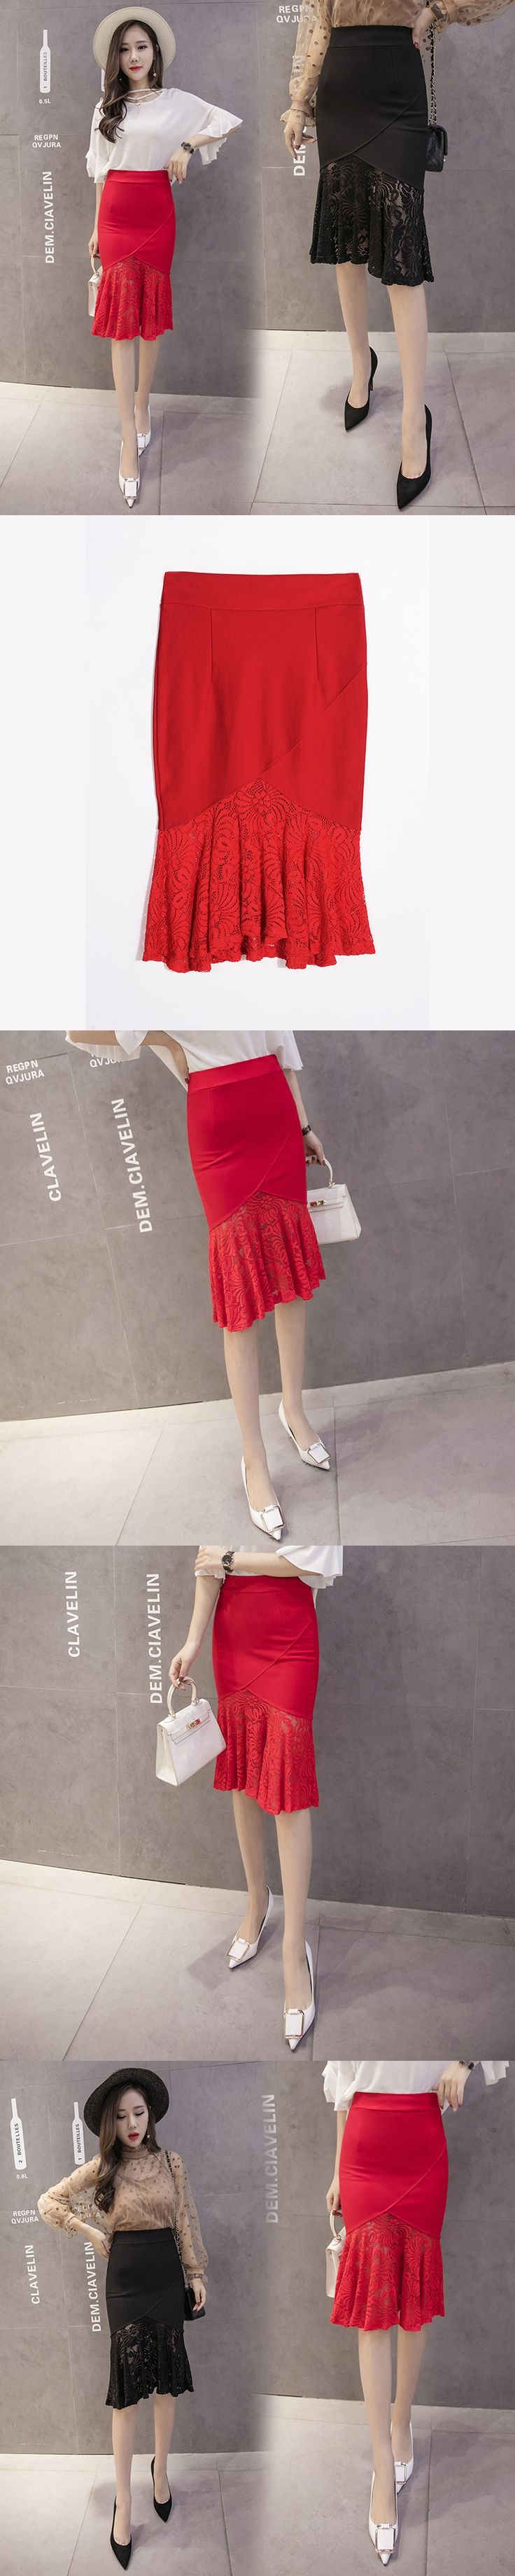 Sexy women ladies black and red floral lace pencil skirt high waist ruffles Stitching long skirts